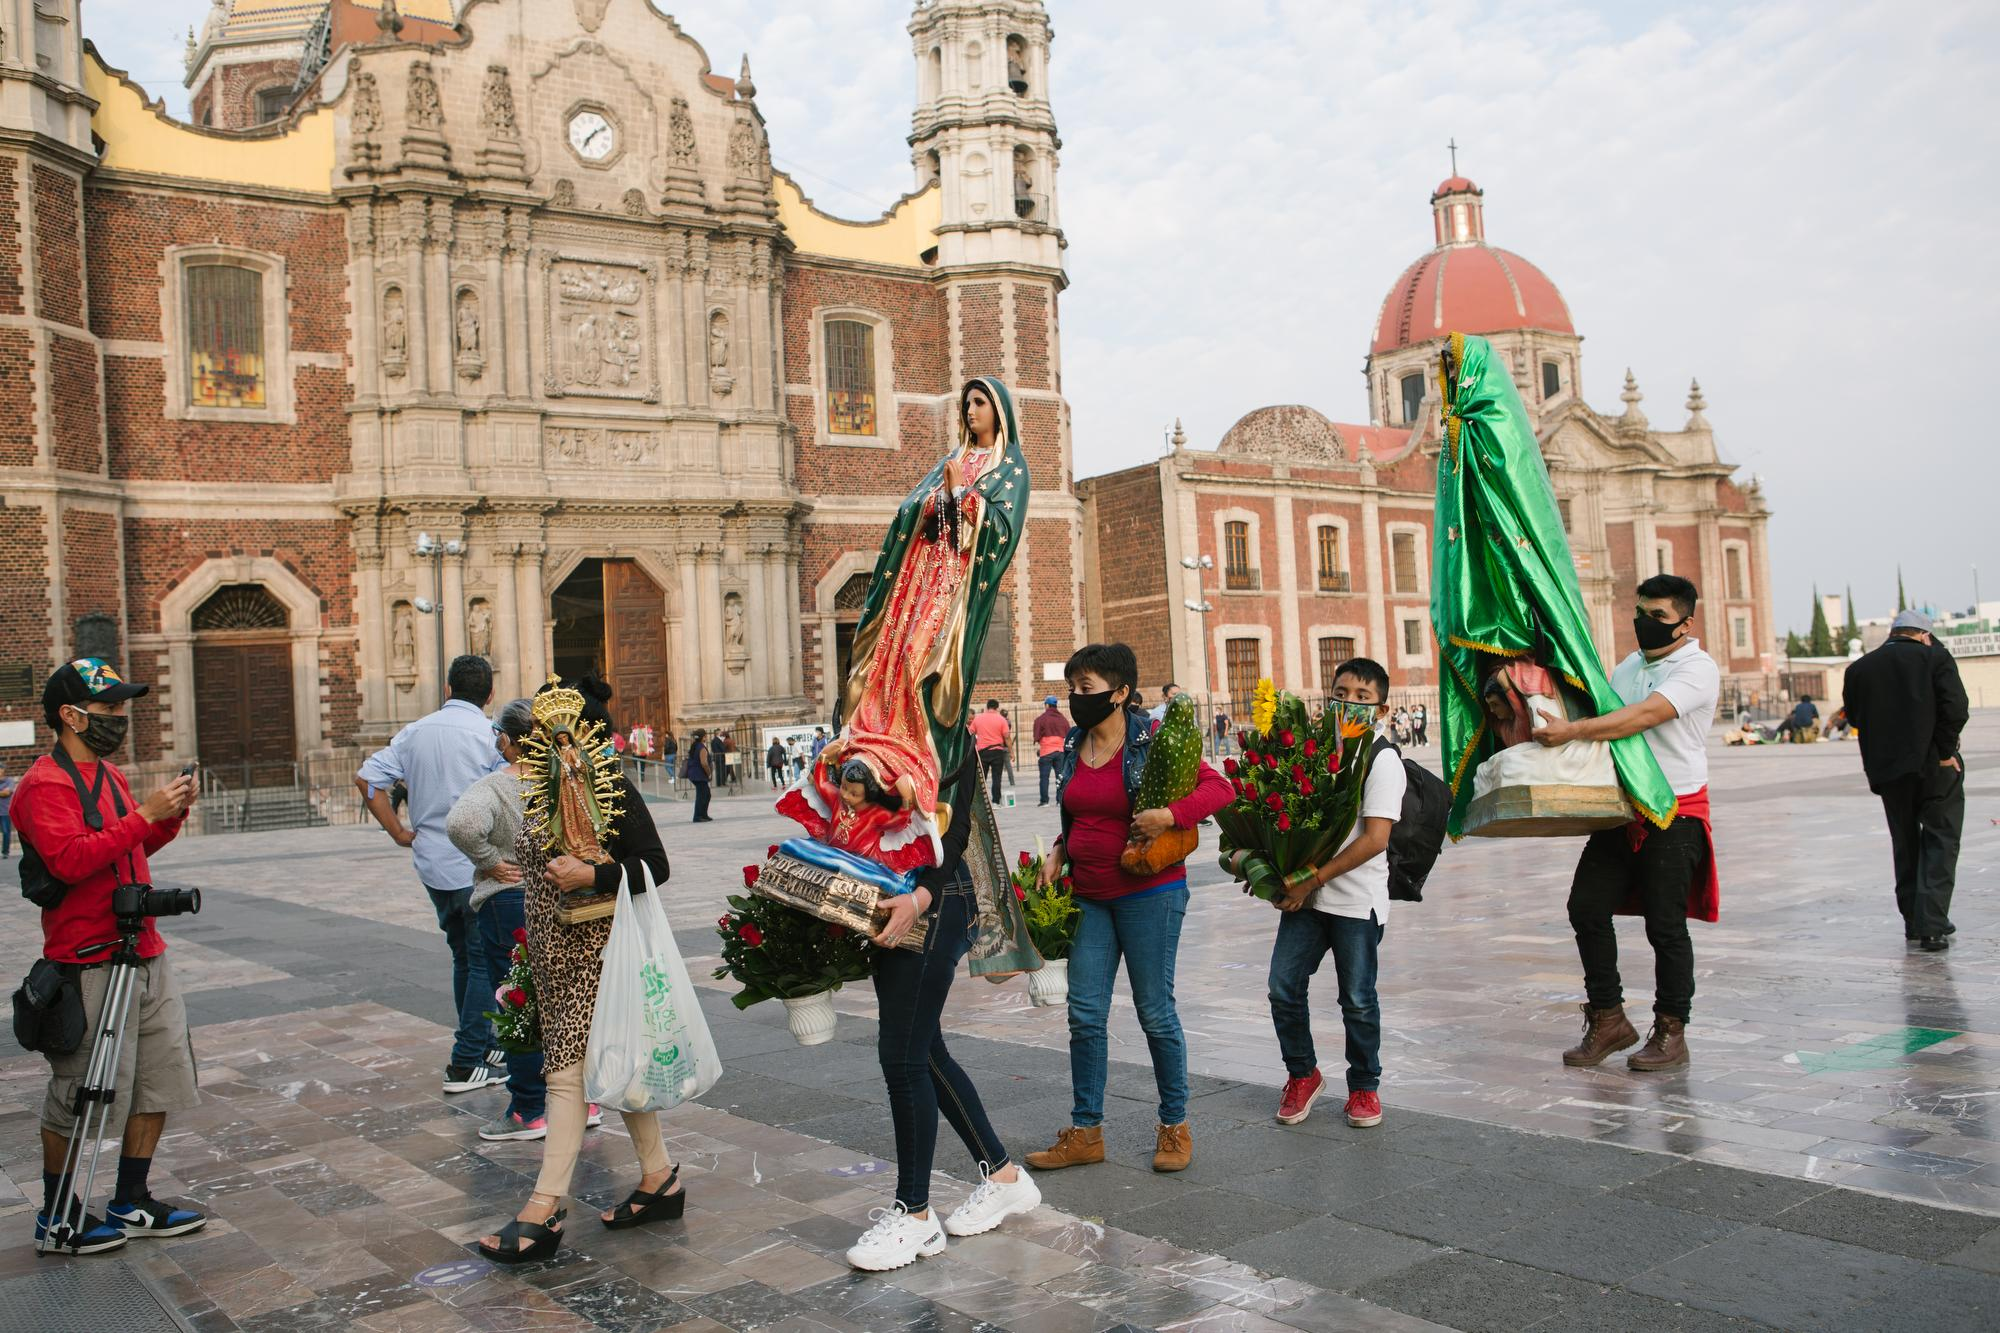 Pilgrims line up for mass at the Basilica of Our Lady of Guadalupe in Mexico City, Mexico. Many visitors arrived prior to its closure due to the COVID-19 pandemic.